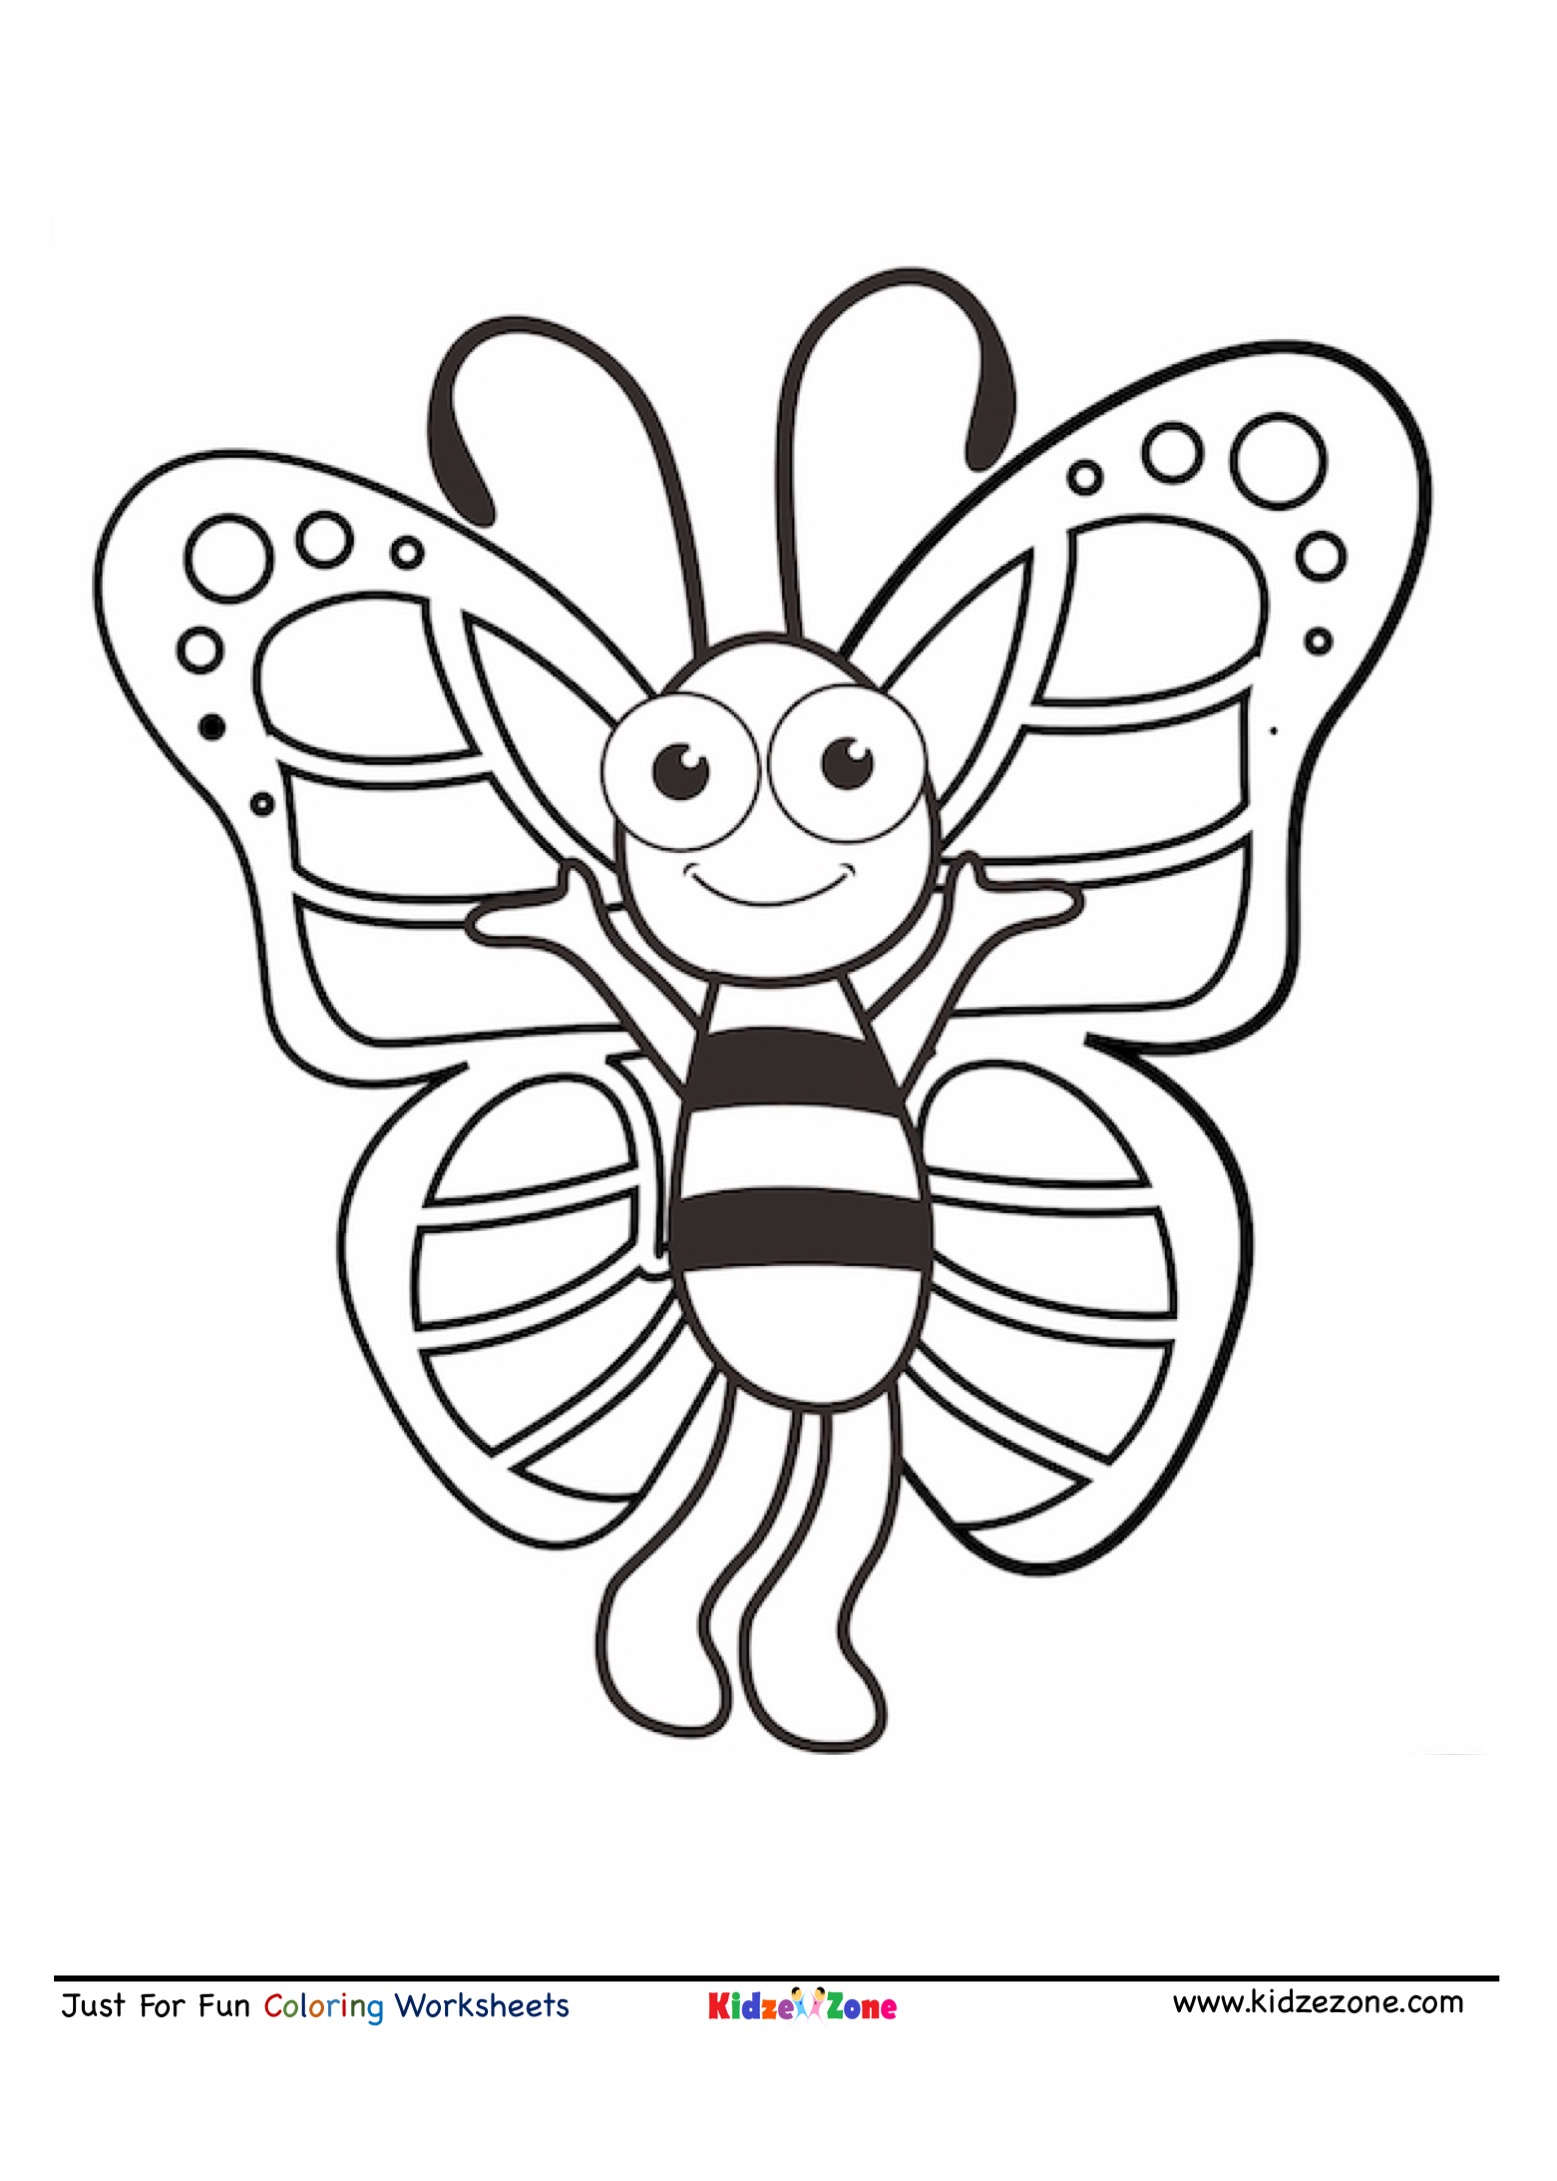 Butterfly Cartoon Coloring Page - KidzeZone